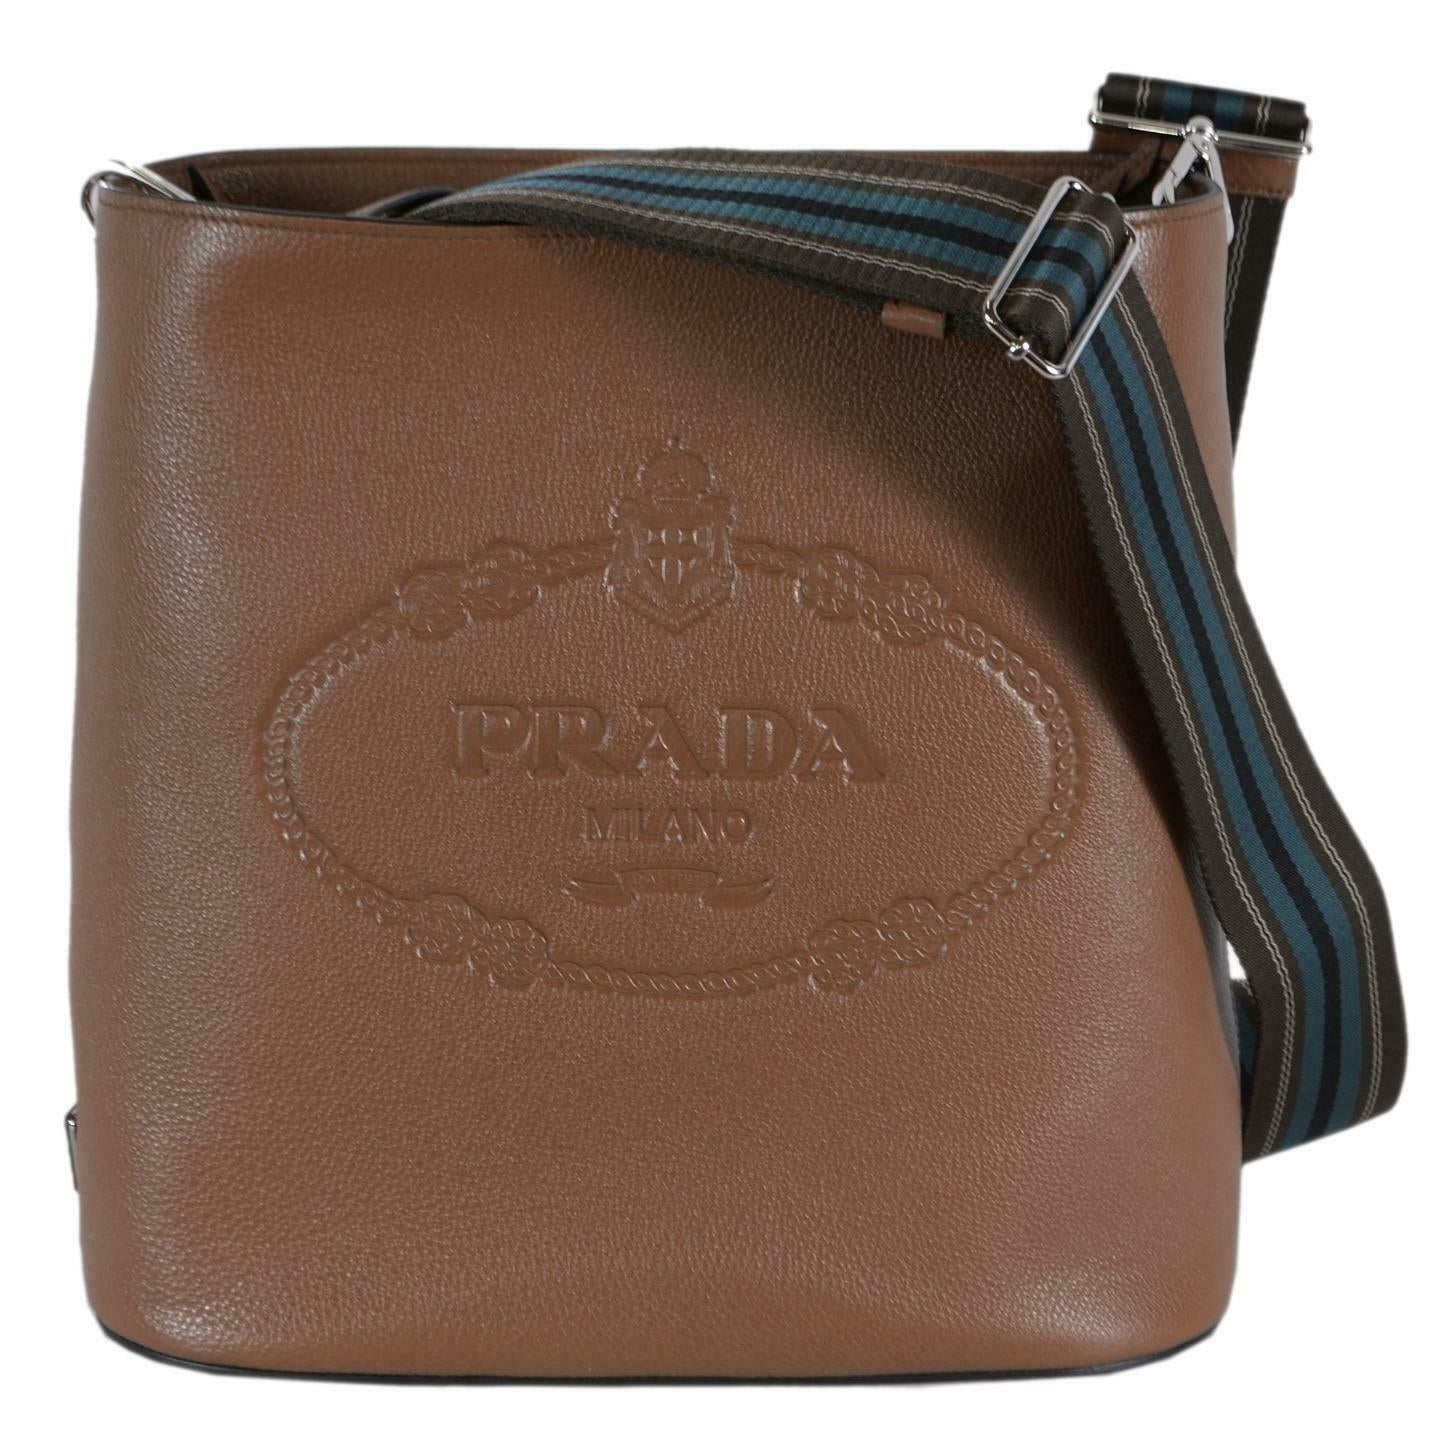 19edb7b43b0c Prada 1BE023 Vitello Secchiello Tan Leather Embossed Logo Crossbody Purse -  Cannella